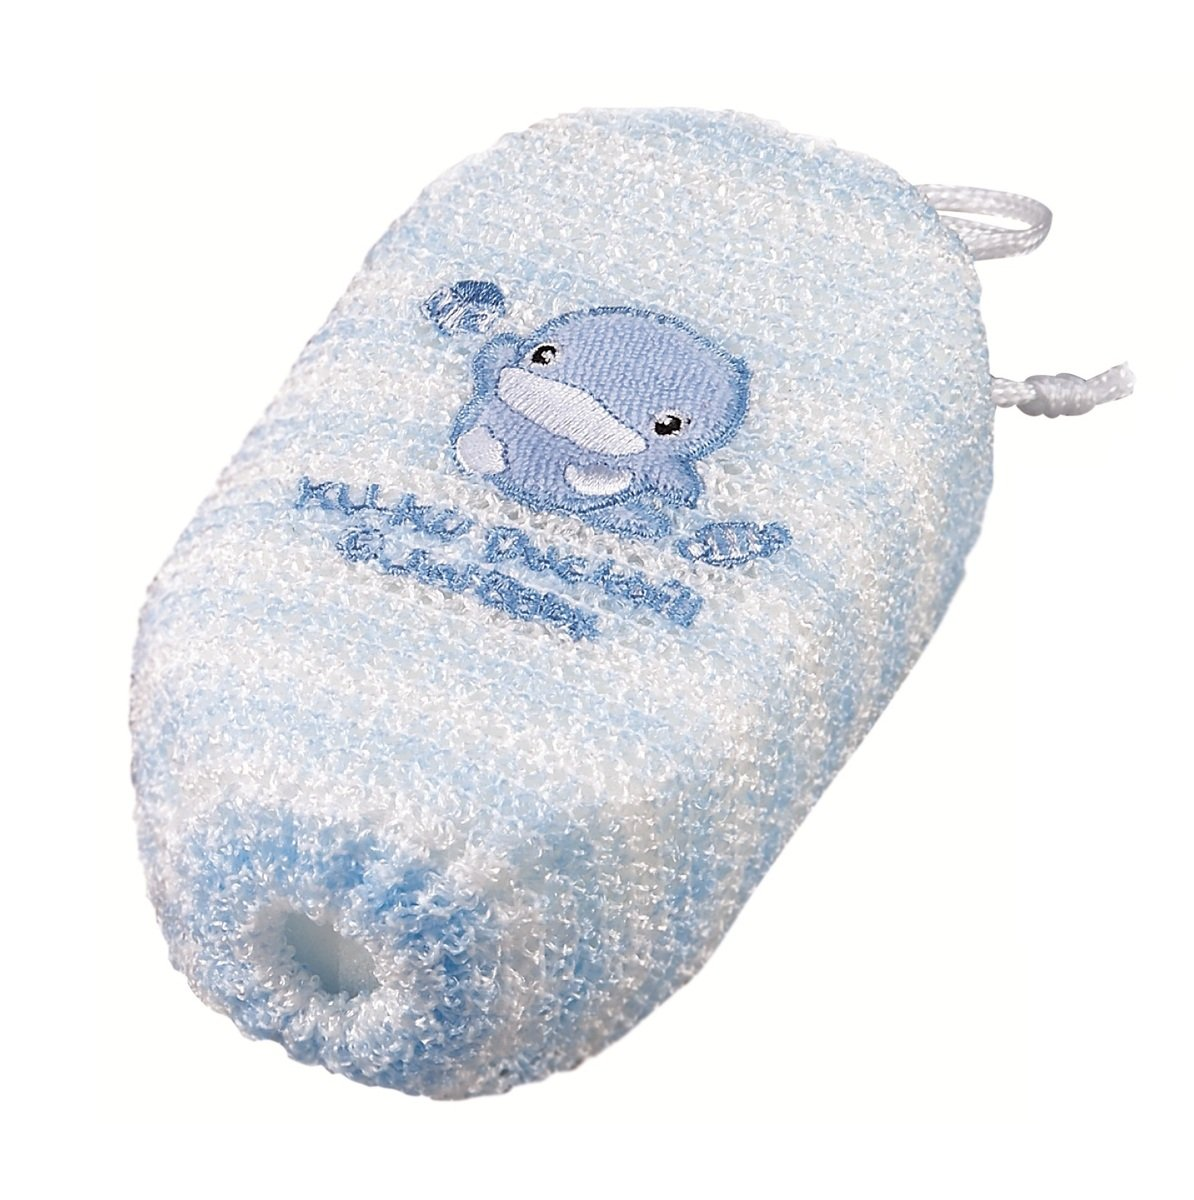 Anti-bacterialbathsponge (Blue)